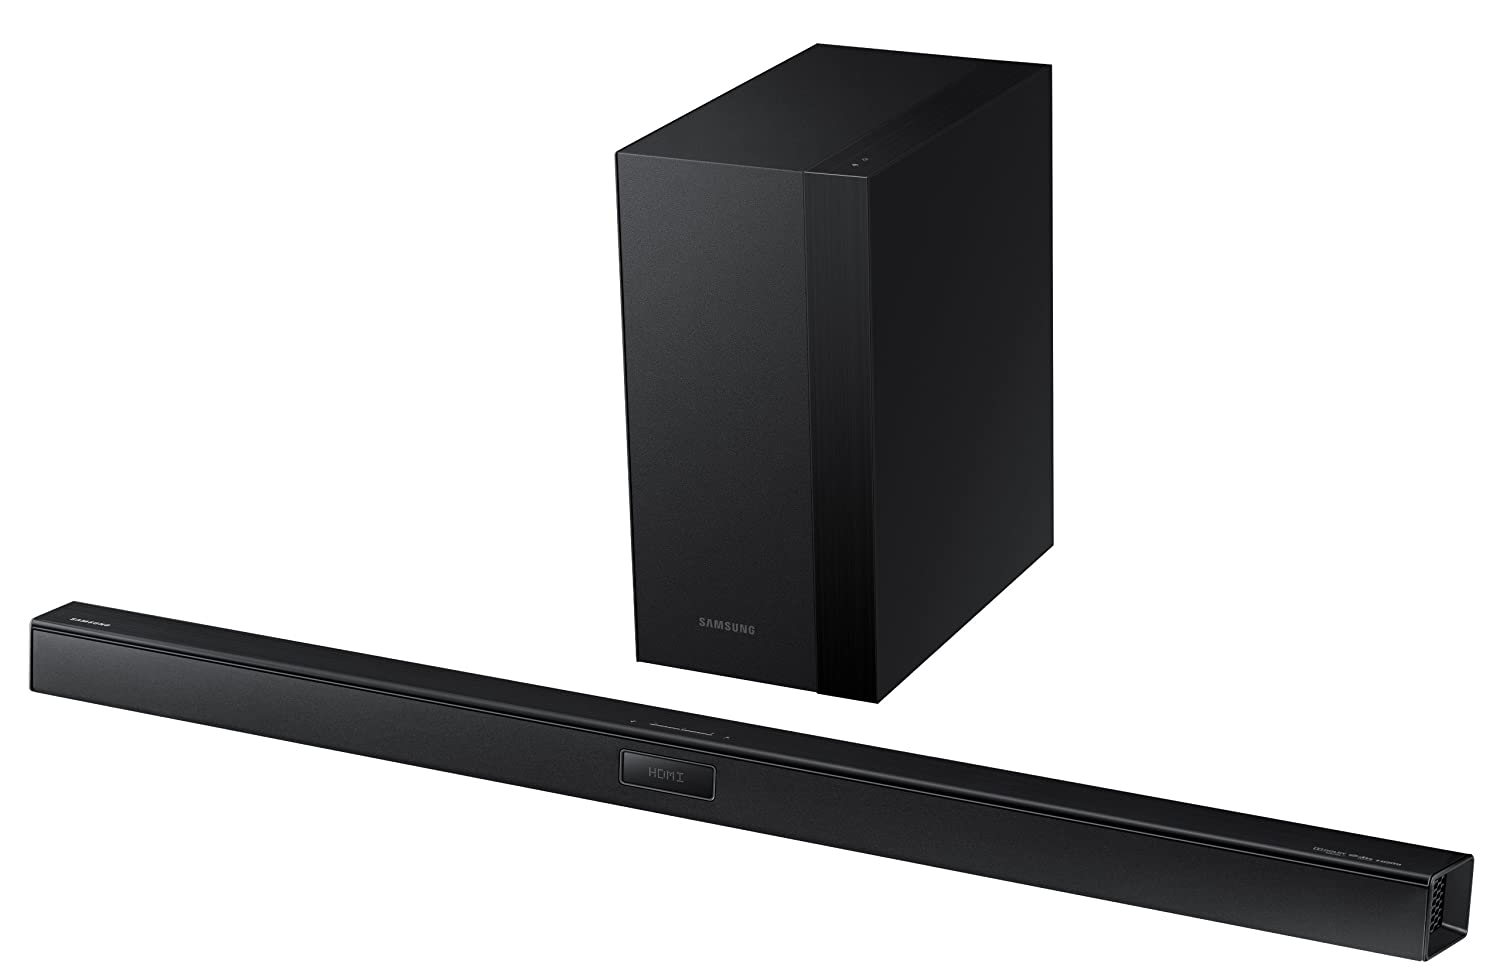 Samsung HW-H450 2.1 Channel 290 Watt Wireless Audio Soundbar (2014 Model)